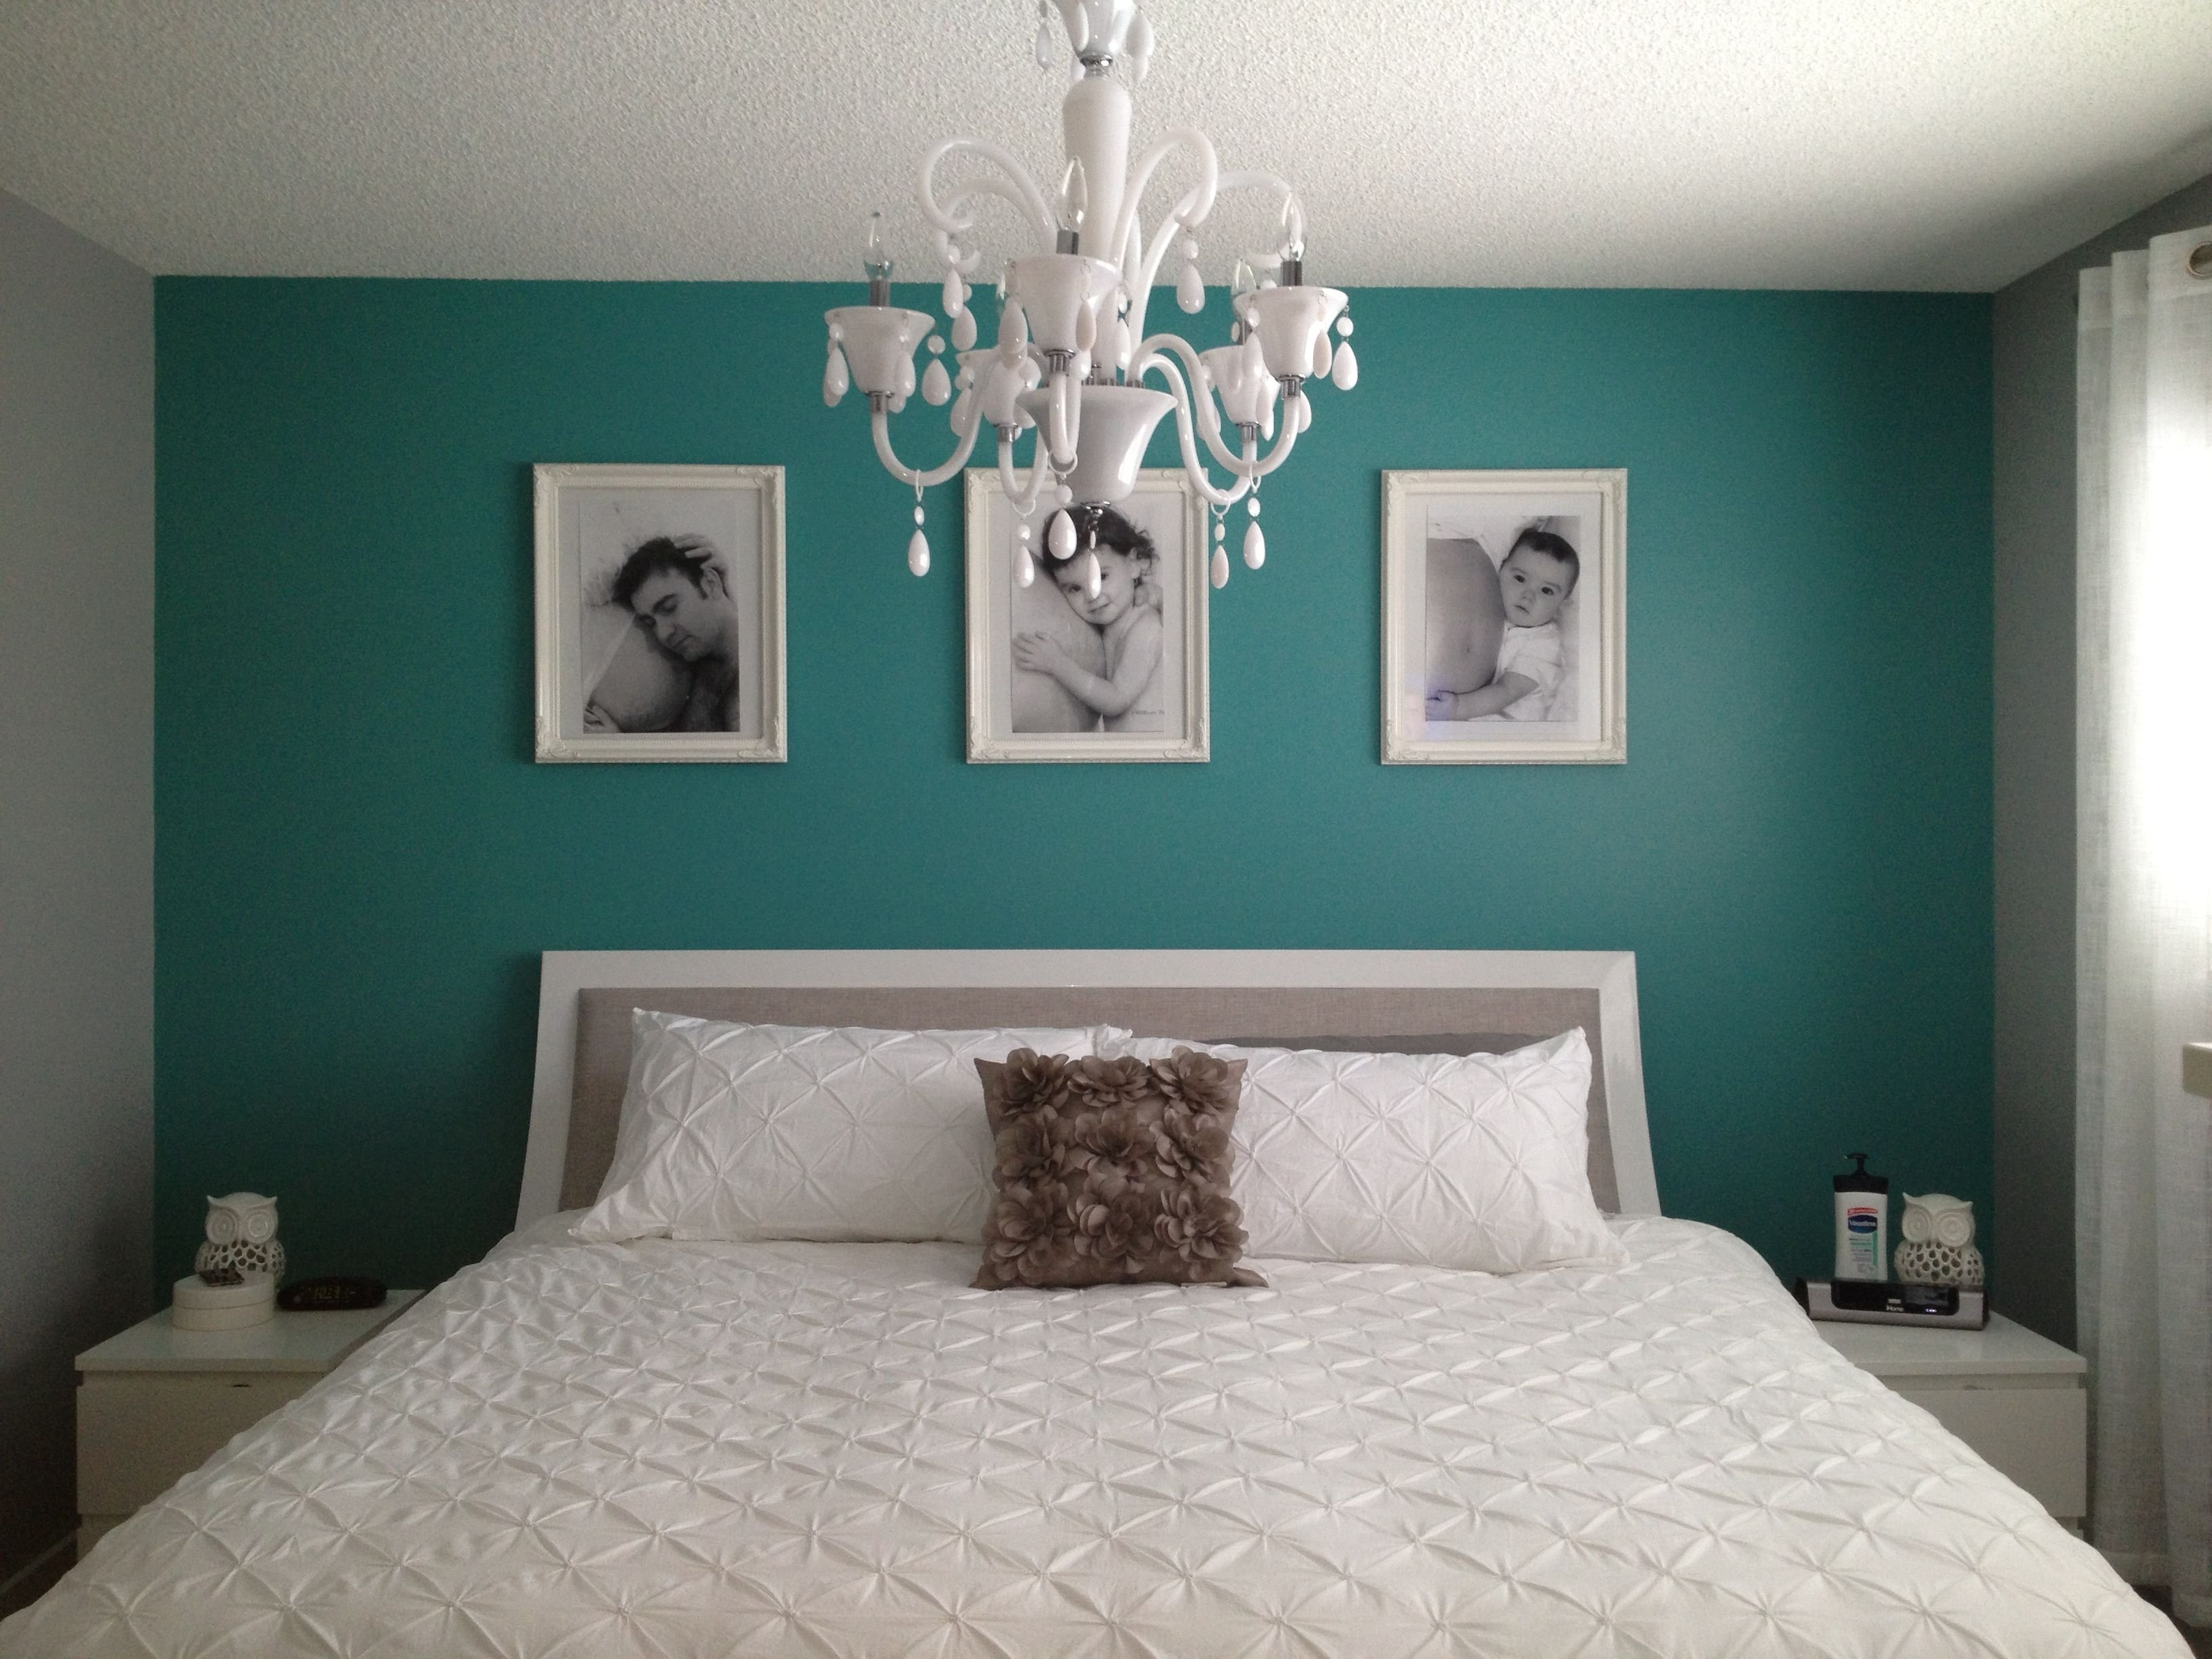 Best 25 Teal Bedrooms Ideas On Pinterest Teal Wall Colors Bedroom Paint Colors And Colors With Pictures